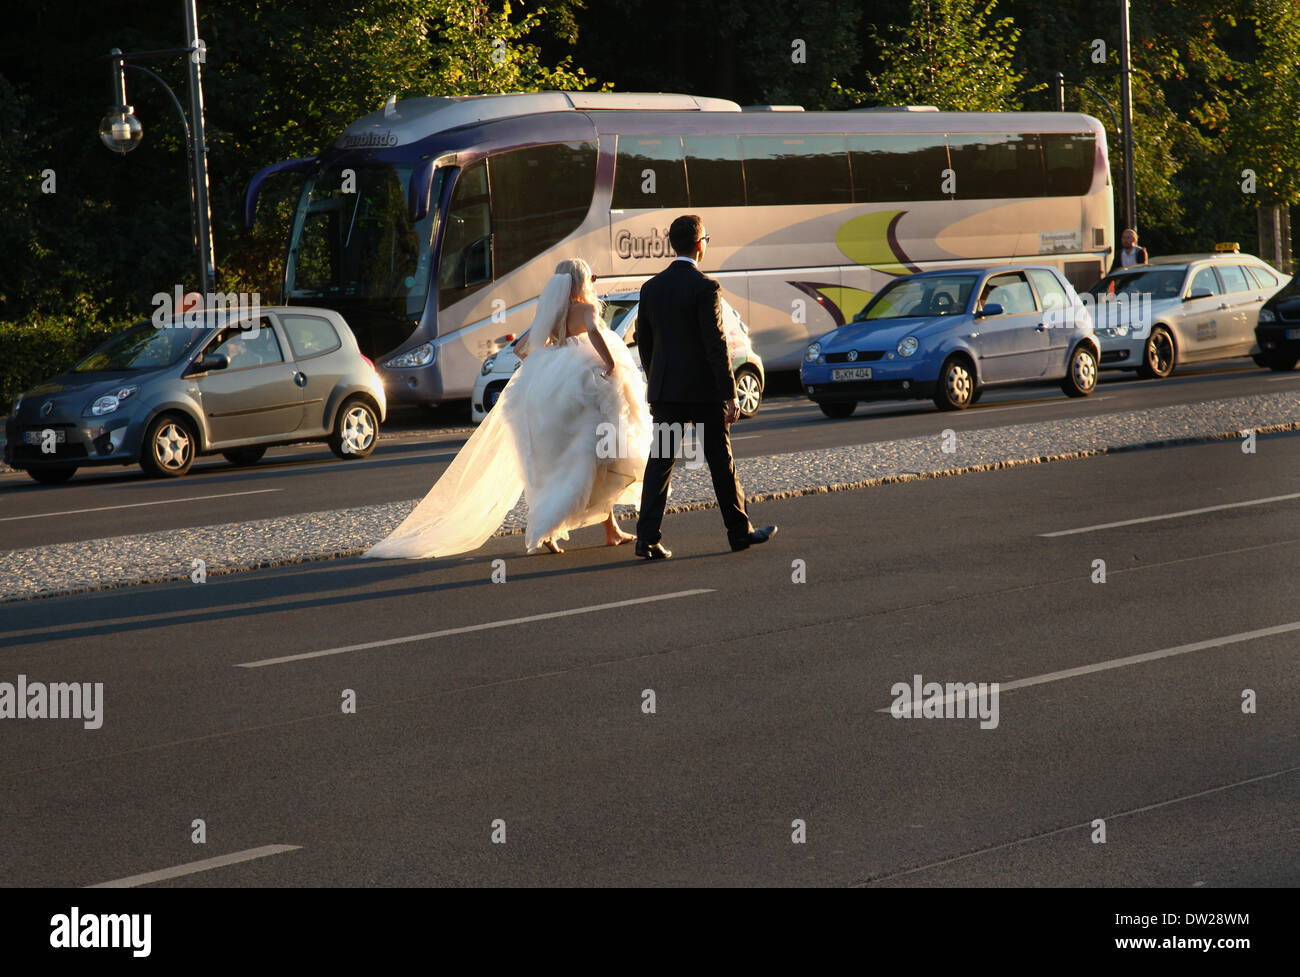 A Polish bridal couple walks on a street at the Brandenburg Gate in Berlin, September 05, 2013. More and more tourists - Stock Photo